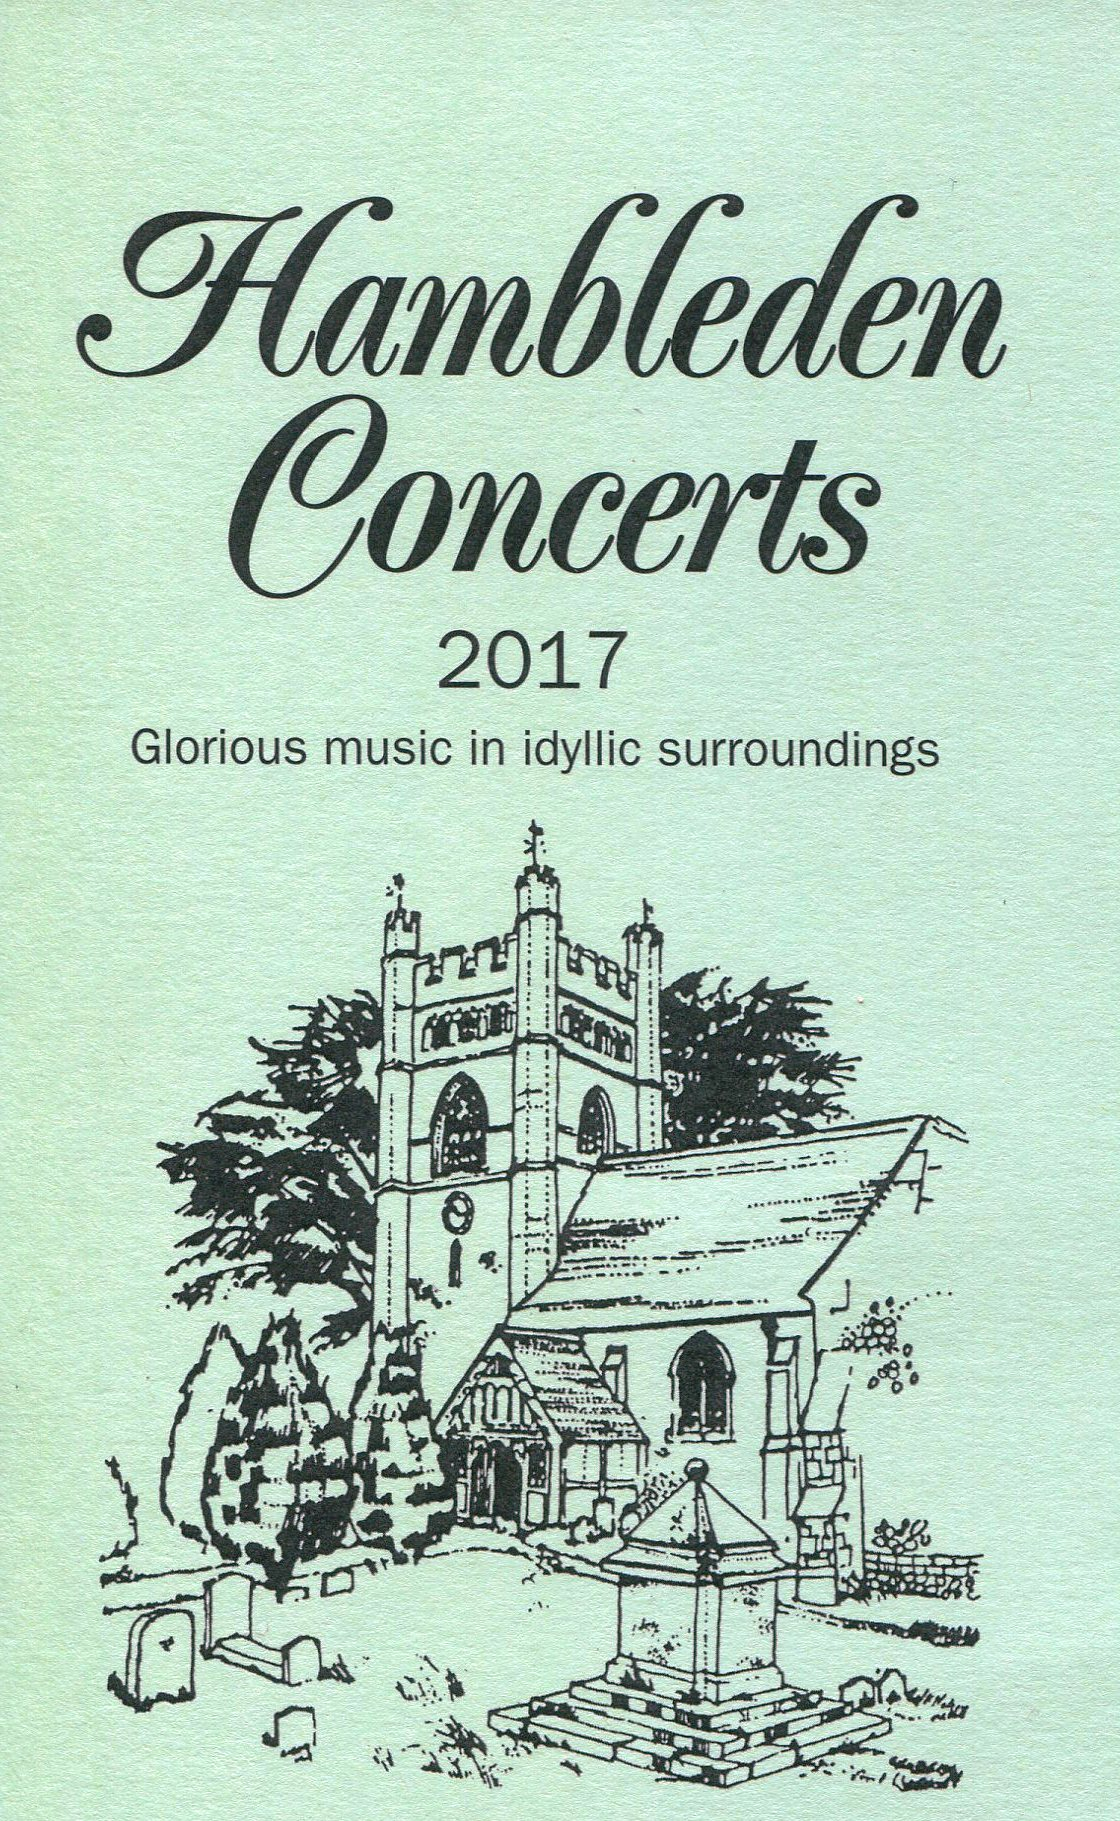 The Hambleden Concerts 2017